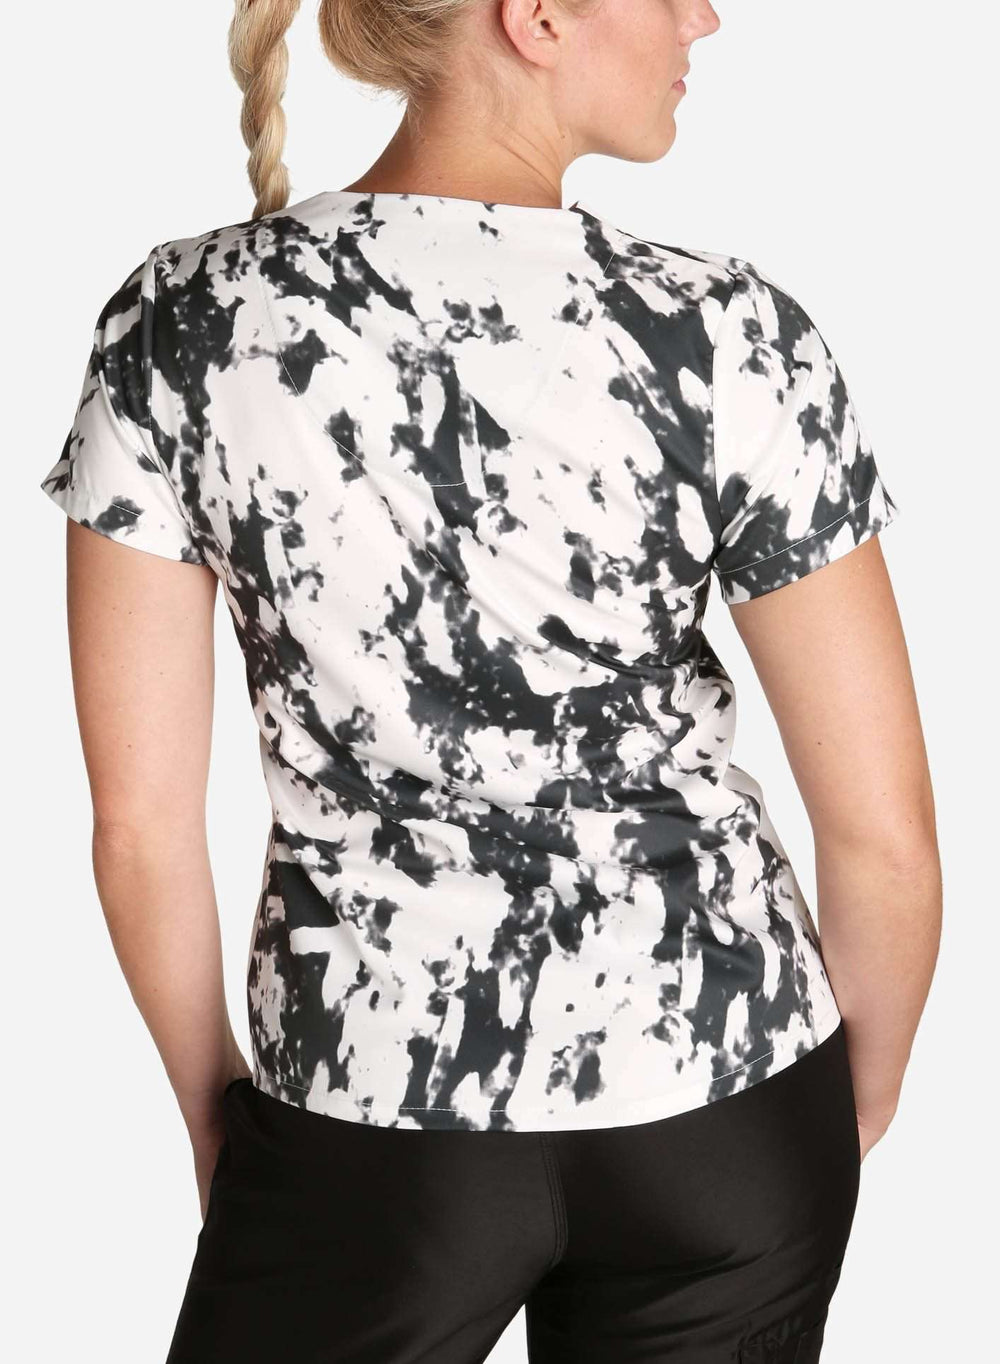 womens stretch scrub top in athletic abstract print black and white color back